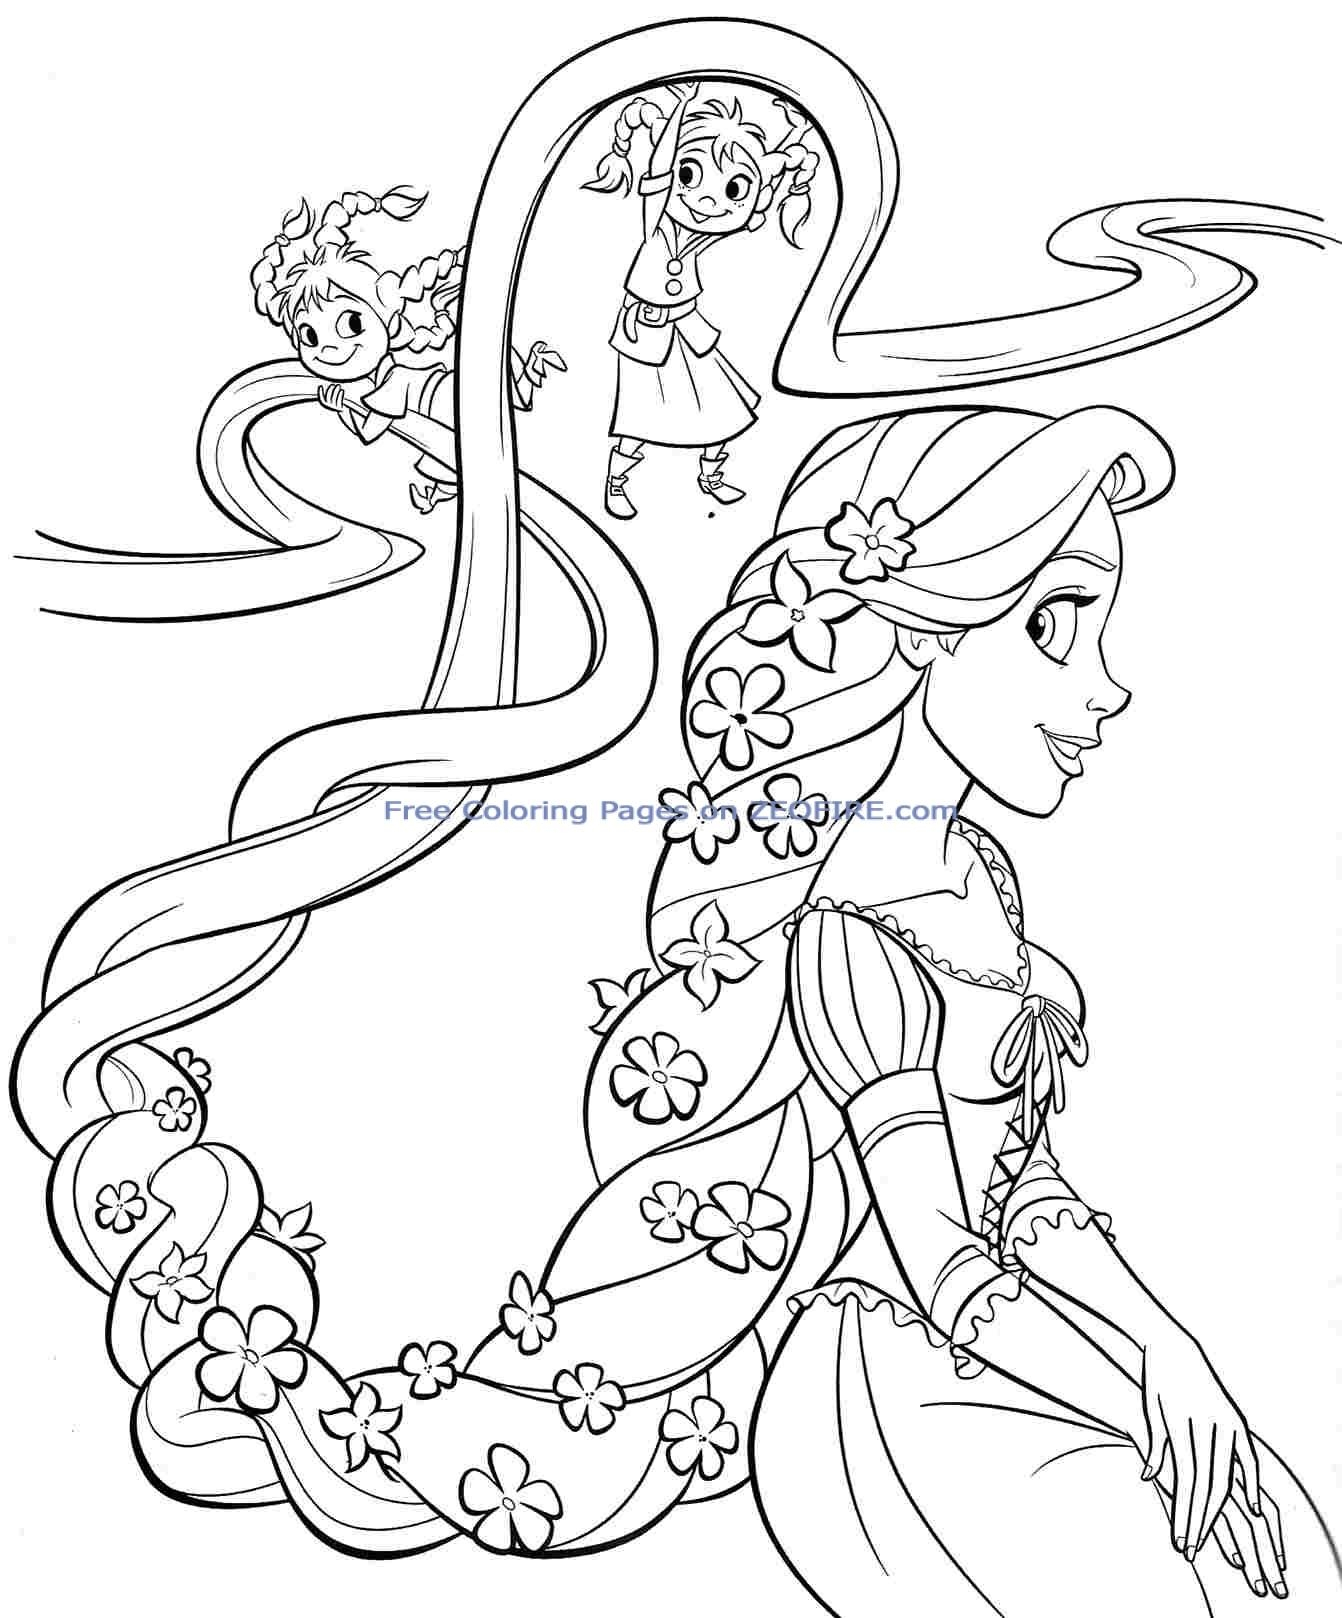 Baby Princess Coloring Pages To Download And Print For Free Princess Coloring Pages Free Coloring Sheets